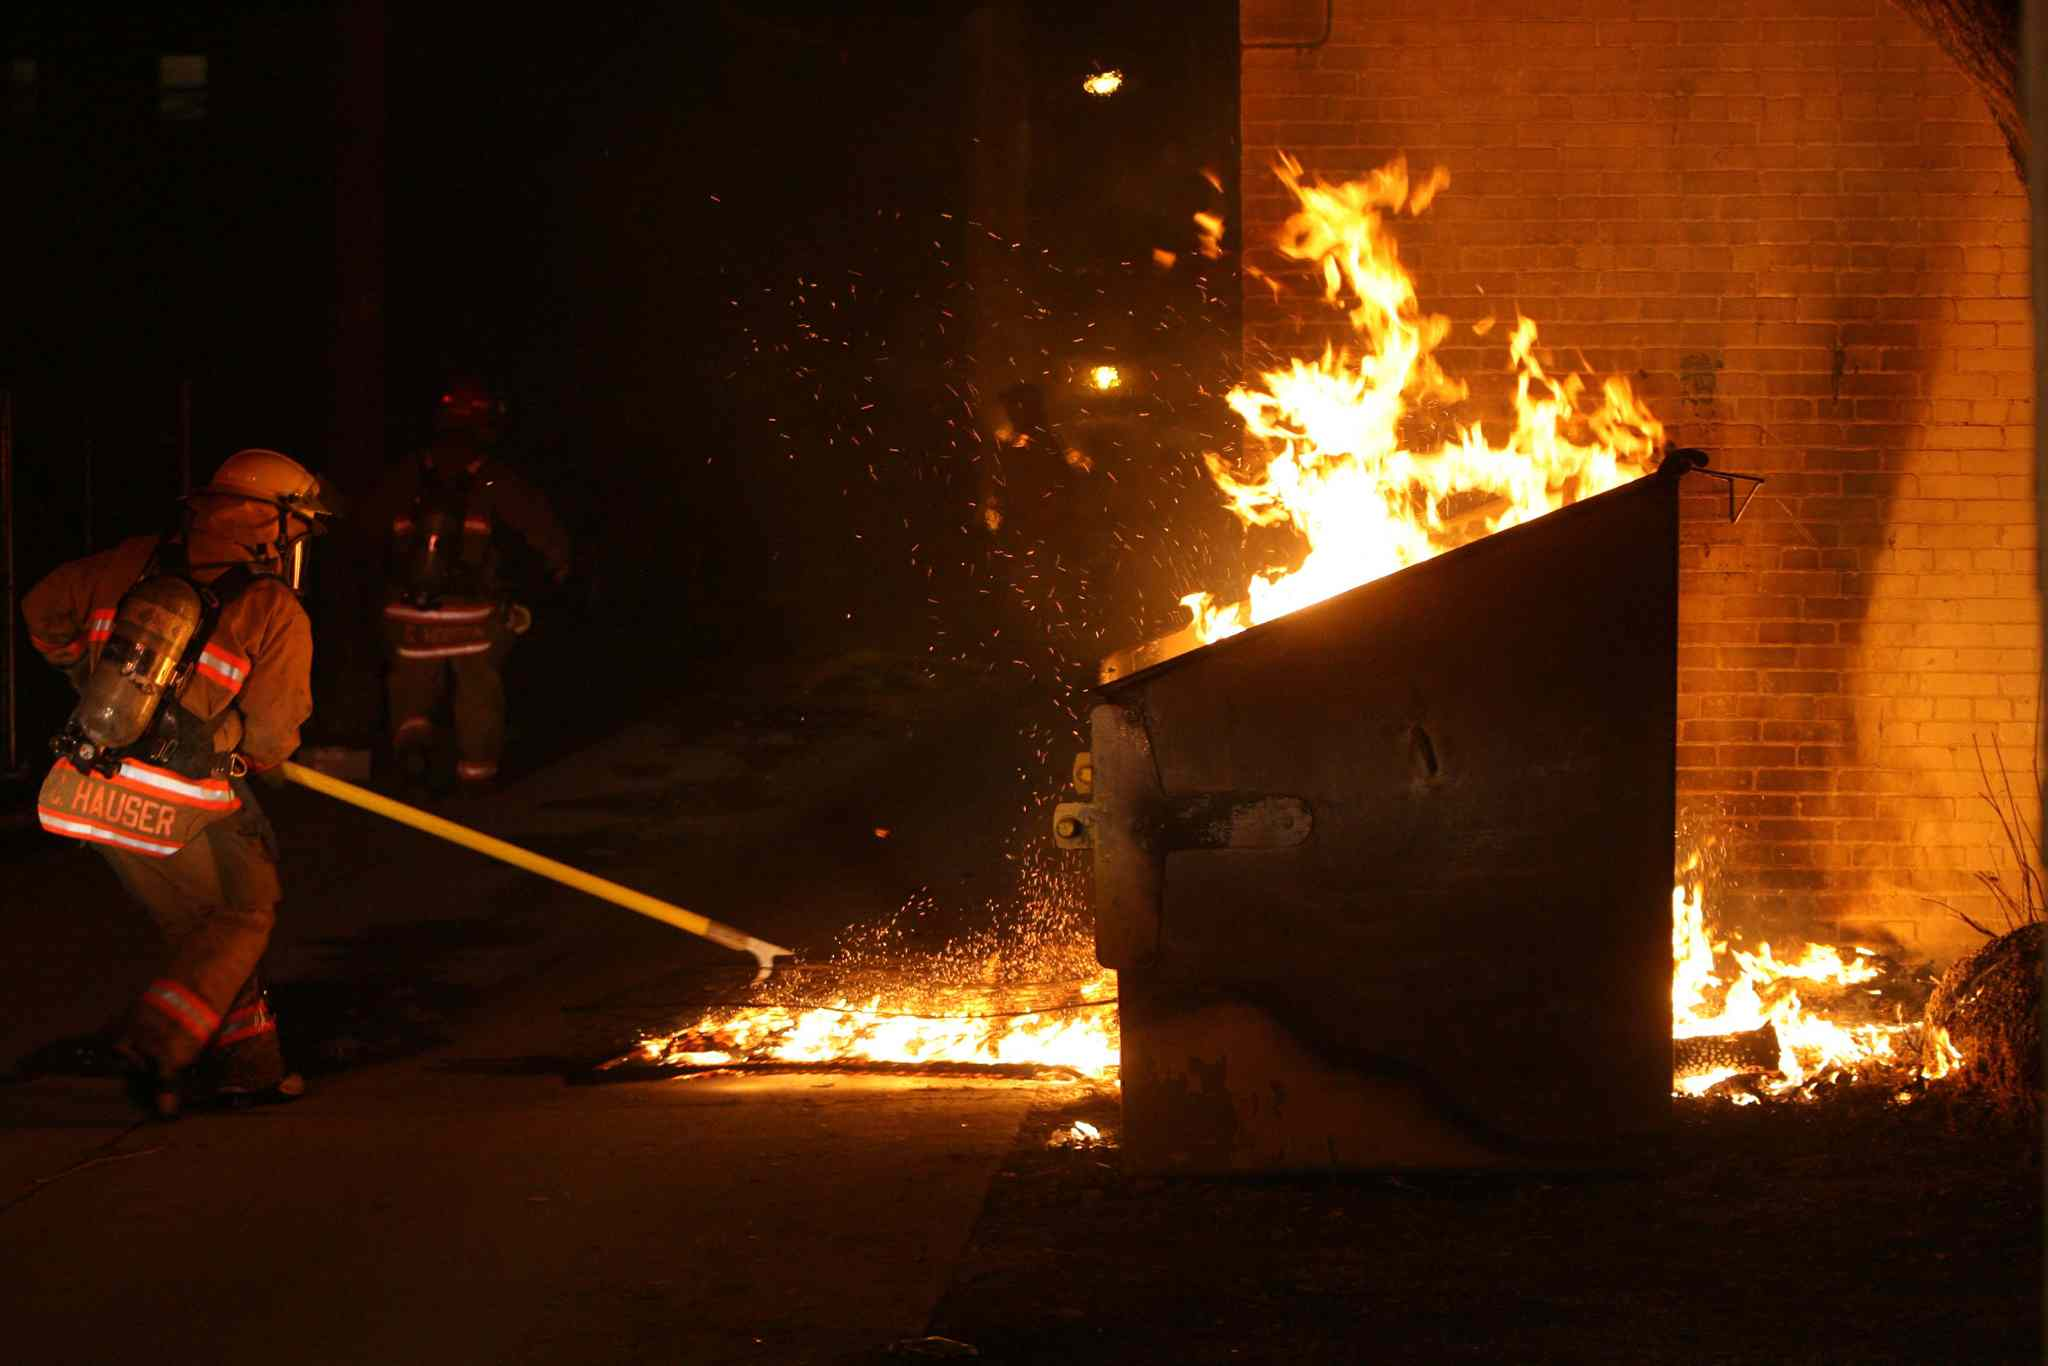 A prevention program is also believed to have played a role in a significant decline in arsons in Winnipeg.